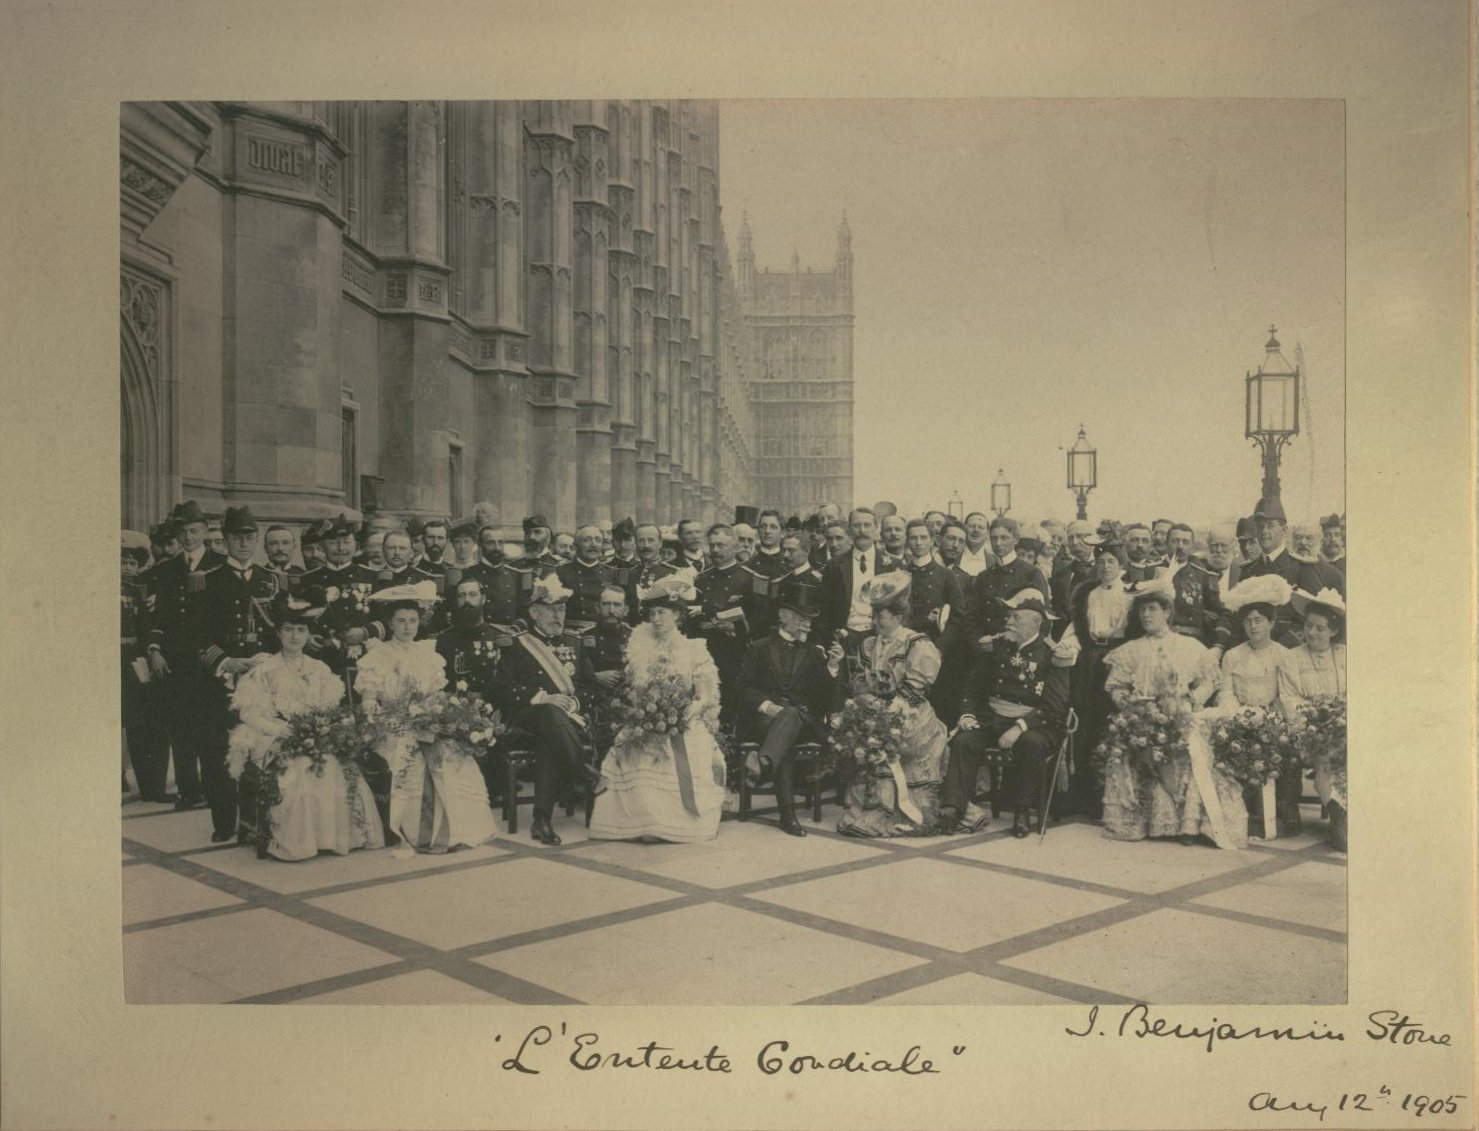 entente cordiale 1904 - 3 I wish to recall peace much more than war